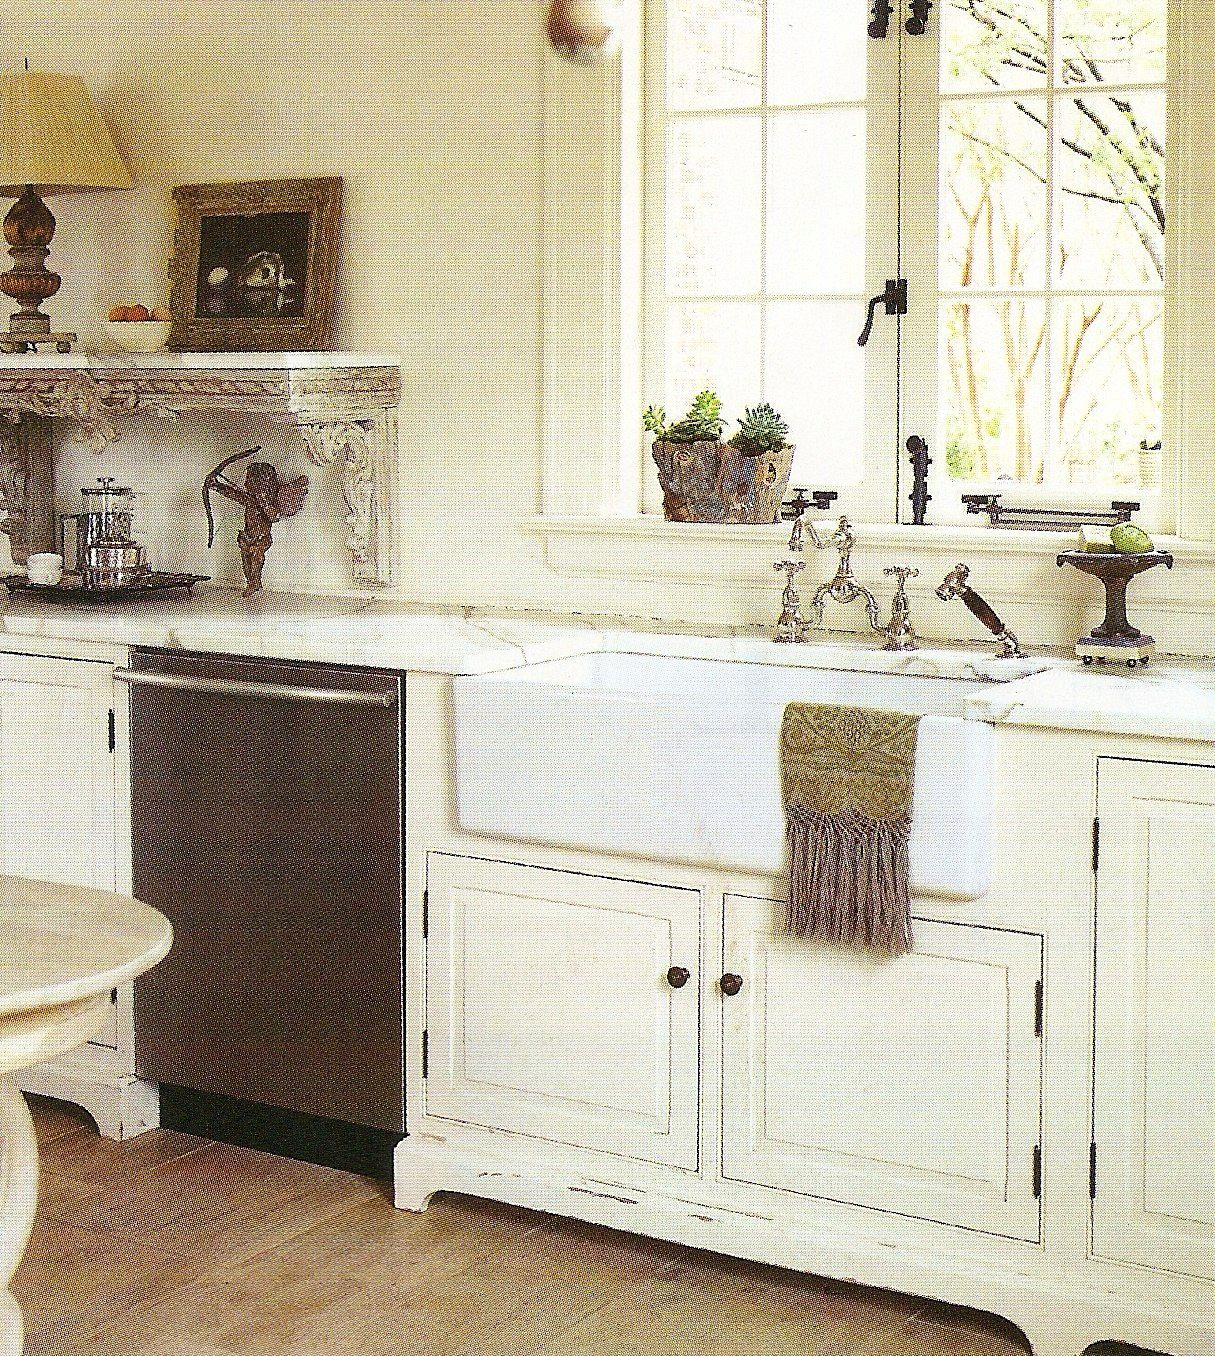 farmhouse sink bridge faucet antique open shelf just everything kitchen inspirations on farmhouse kitchen no upper cabinets id=33300